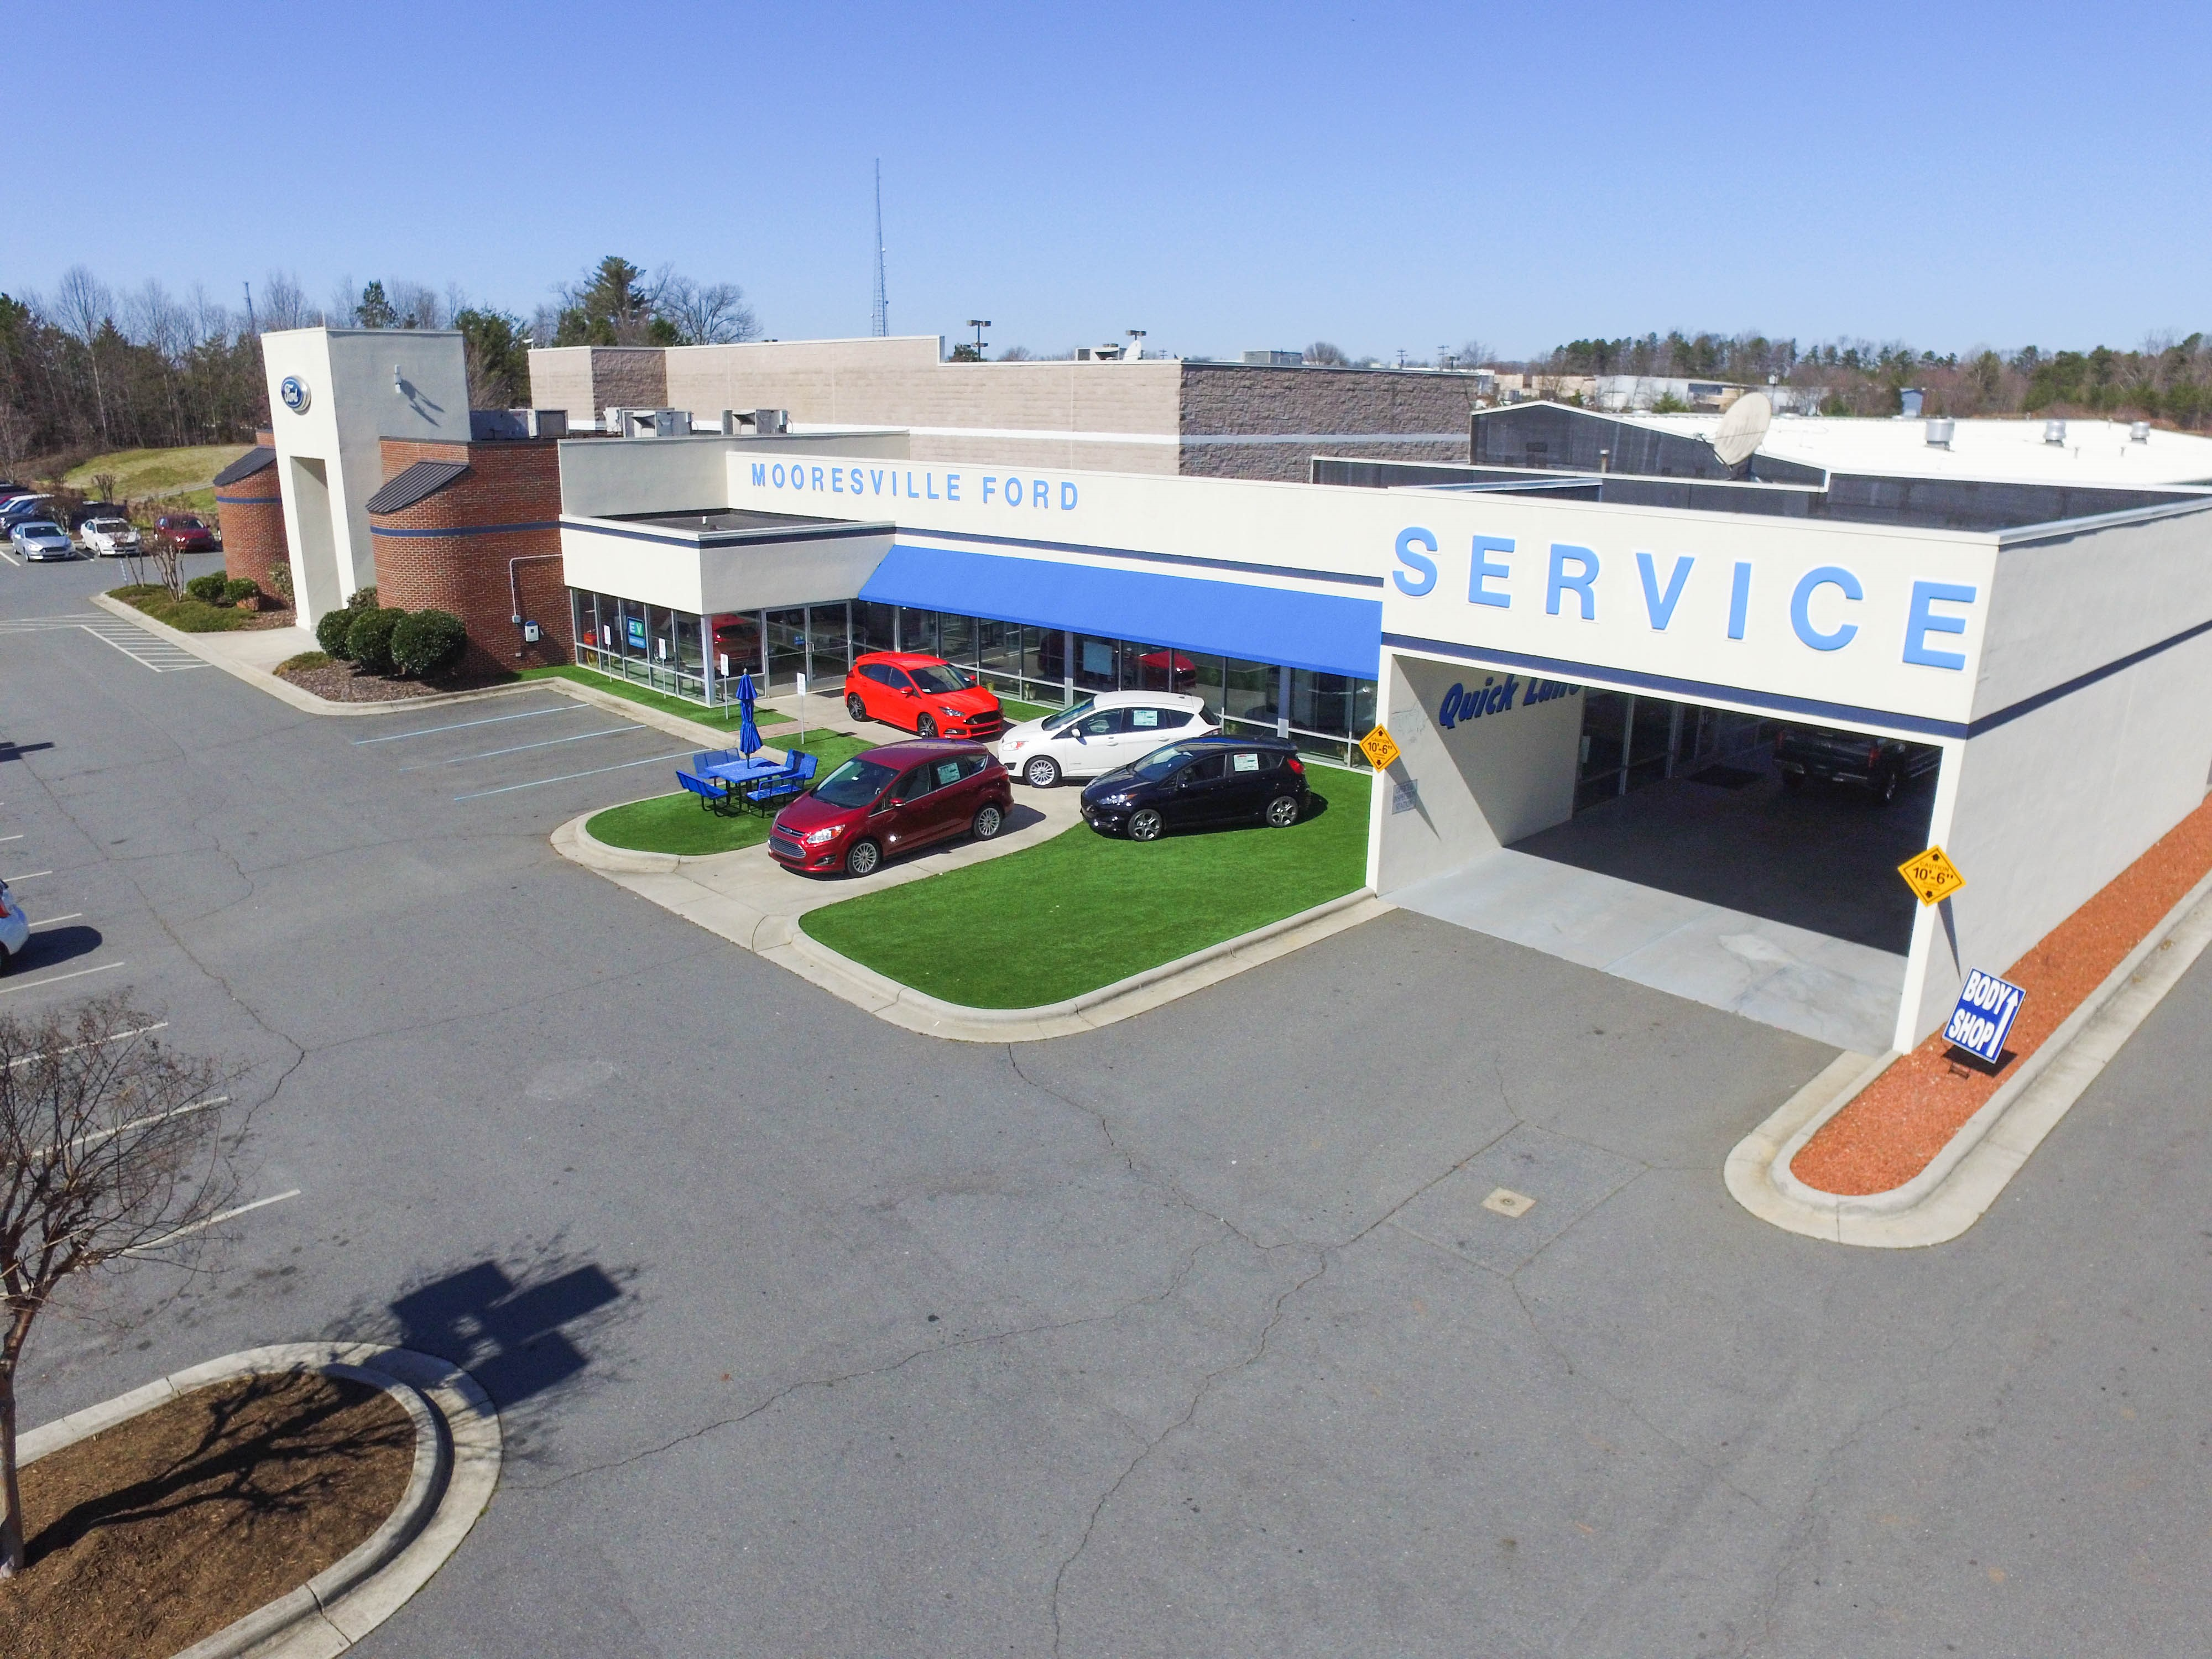 Mooresville Ford Service Department